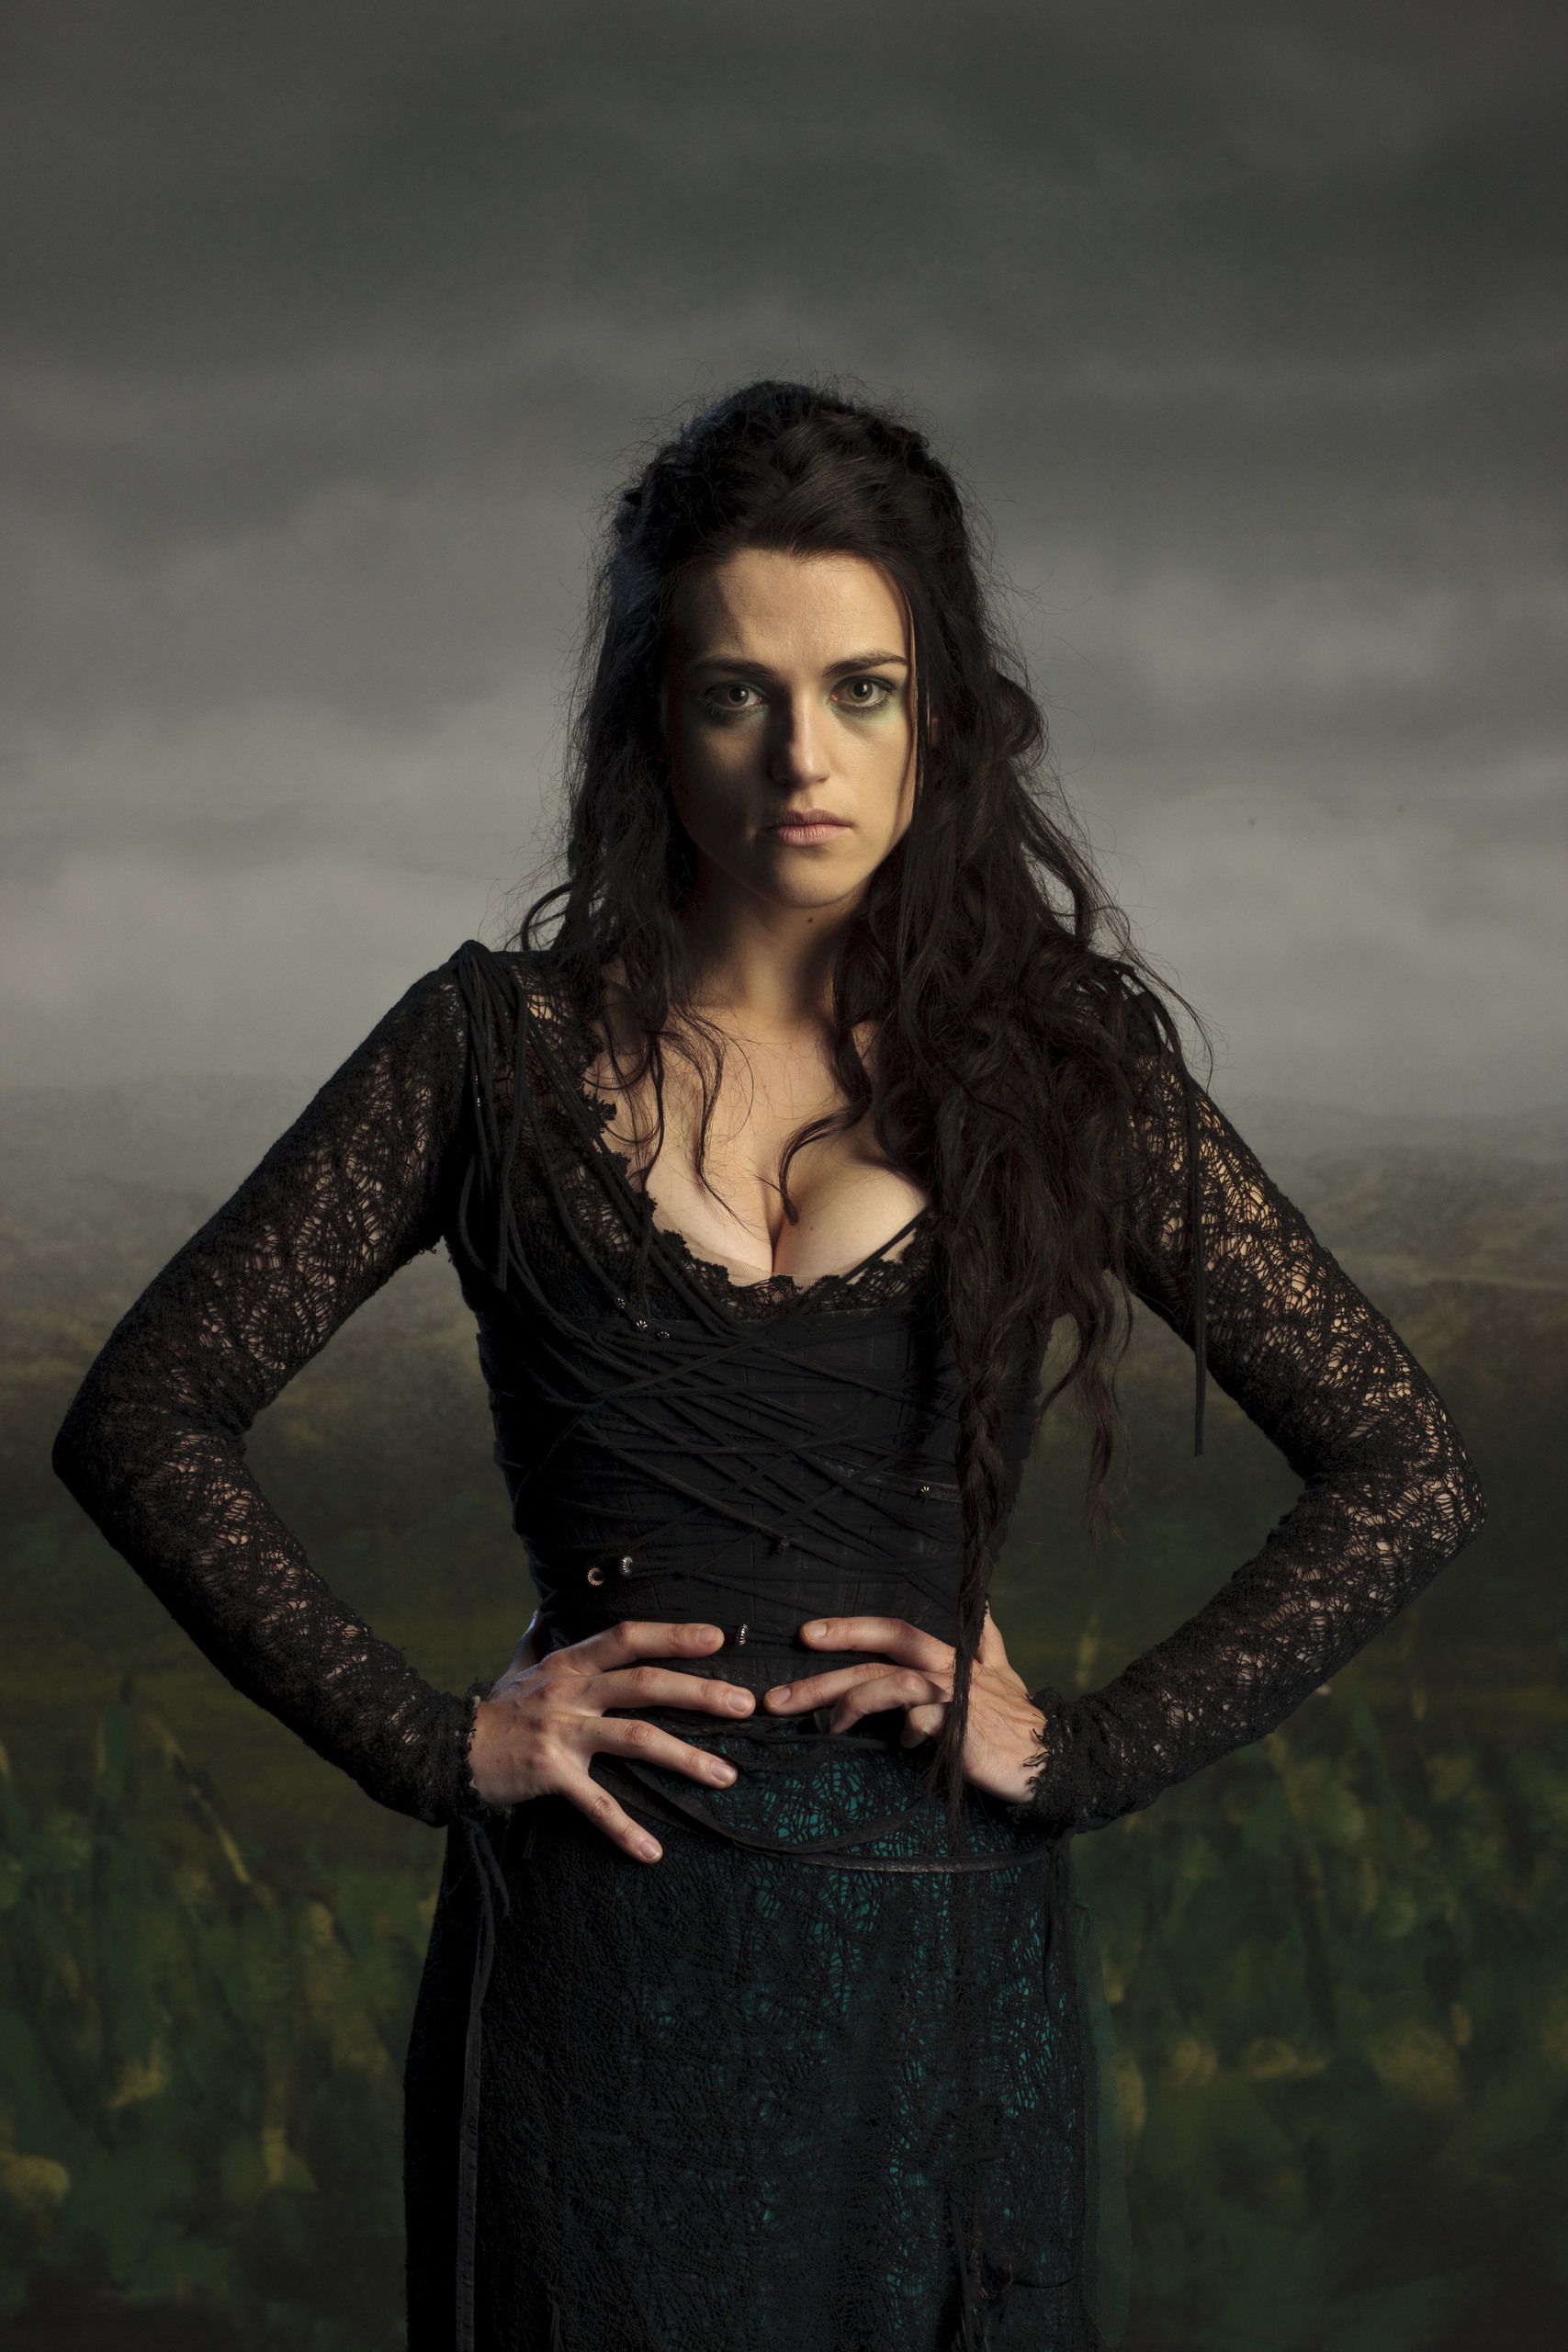 Merlin Bbc Morgana Merlin on BBC images C...